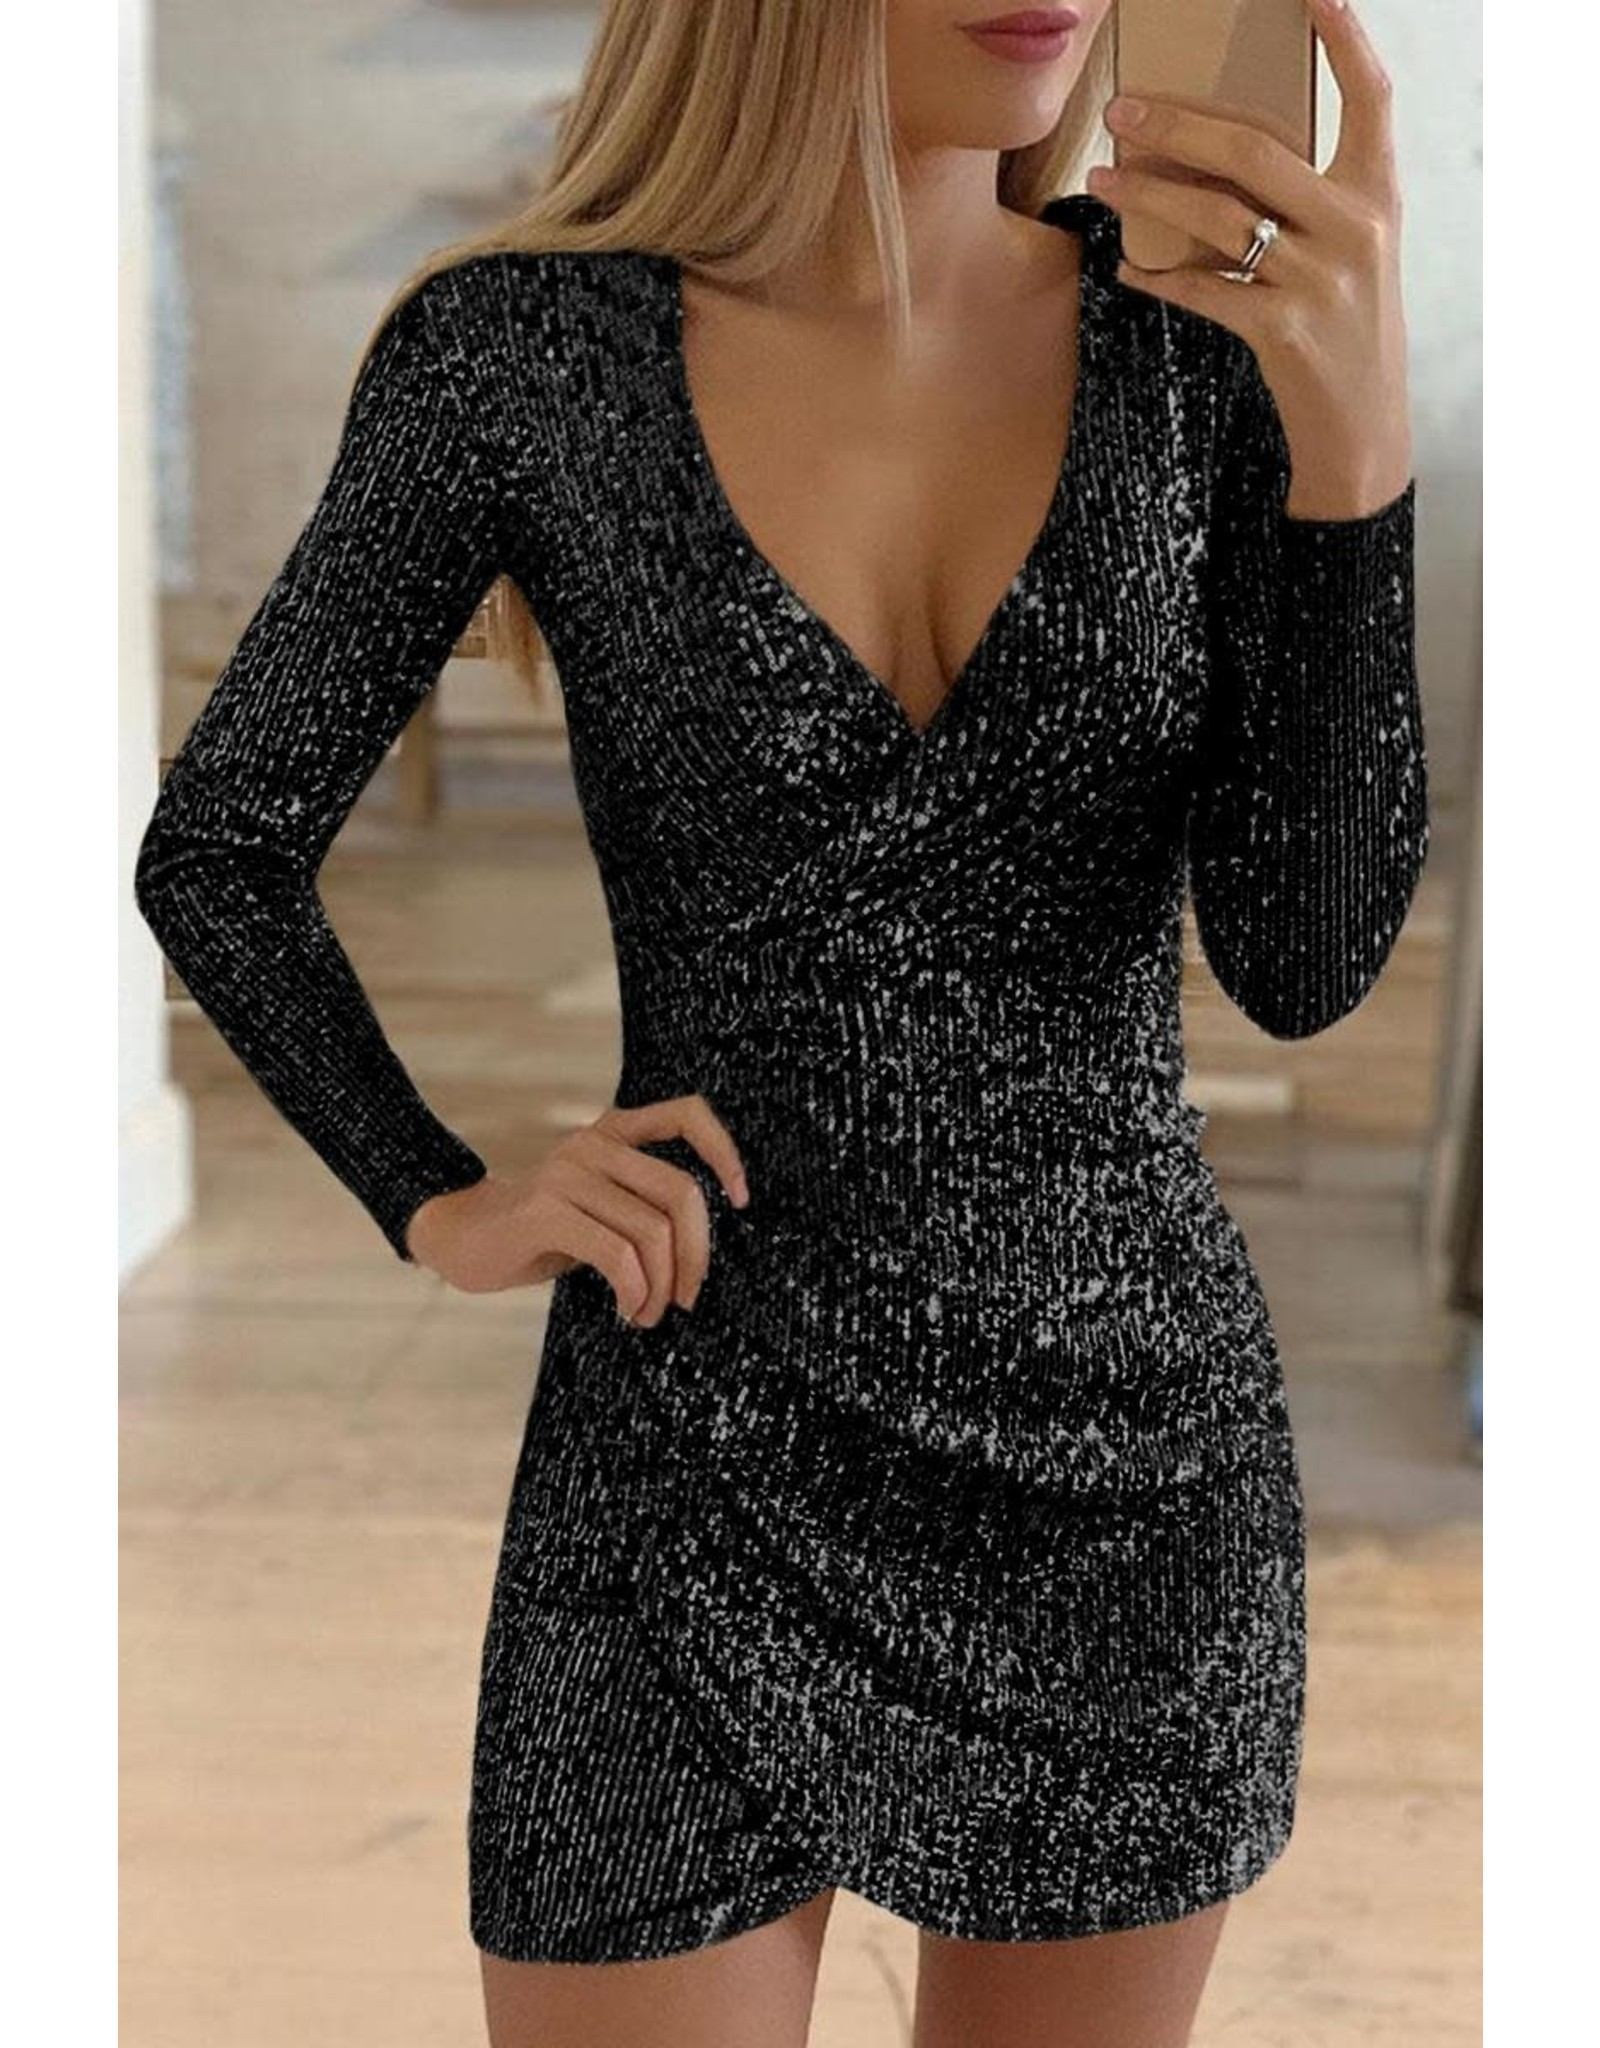 BLACK SURPLICE WRAP RUCHED SEQUIN BODYCON DRESS - LG